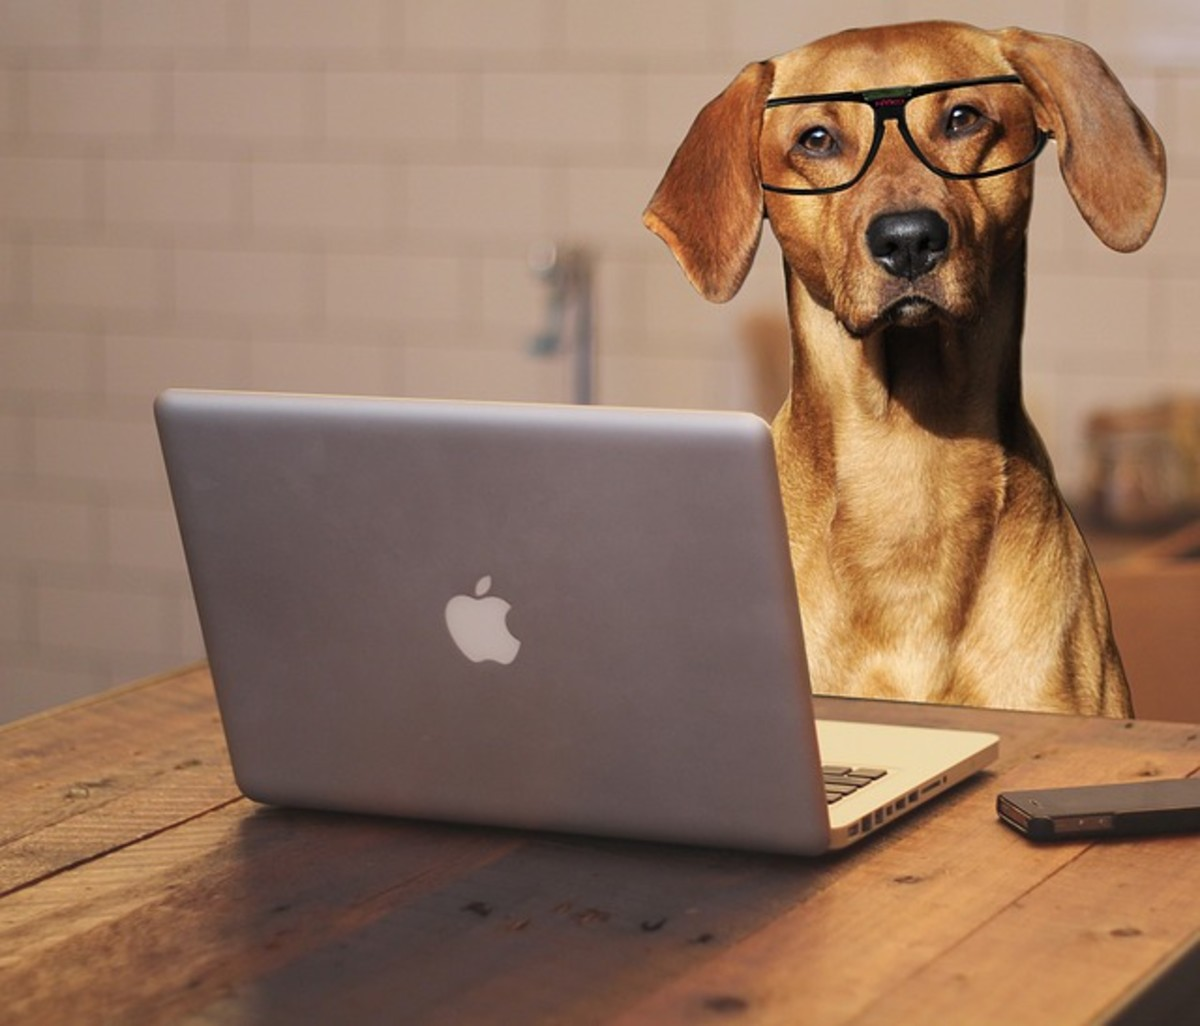 Dog with glasses and laptop